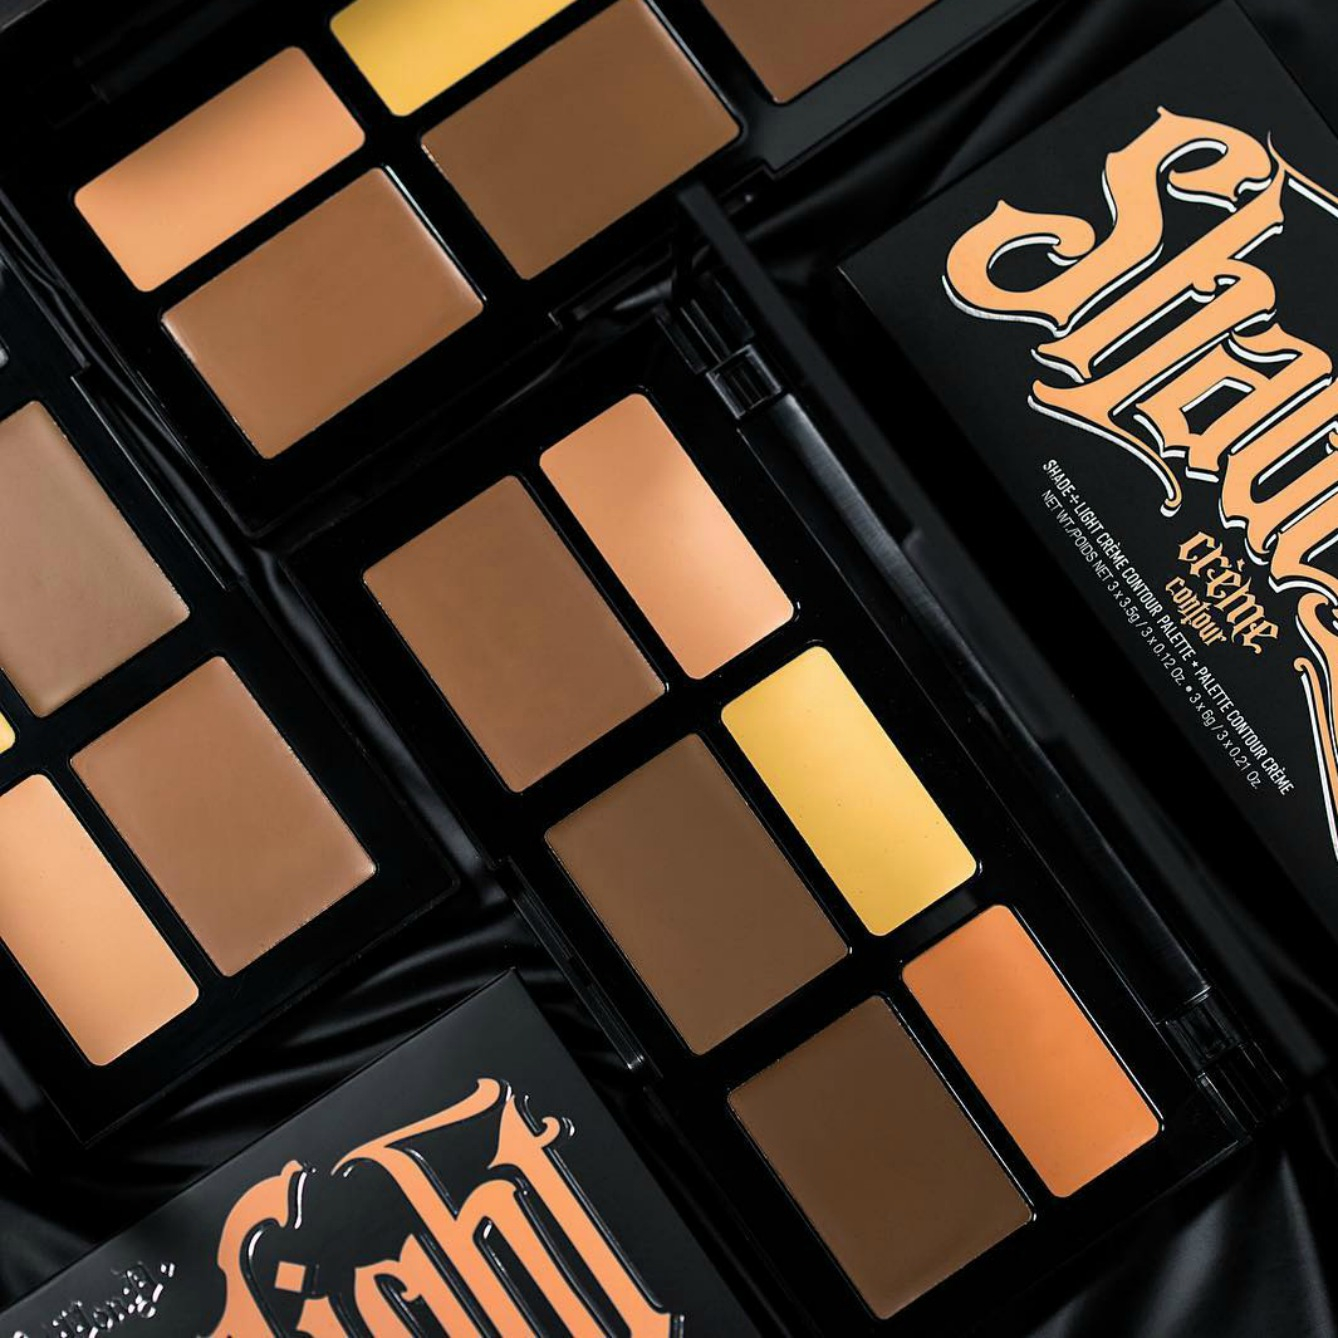 Launching Today: Kat Von D Shade + Light Crème Contour Palette